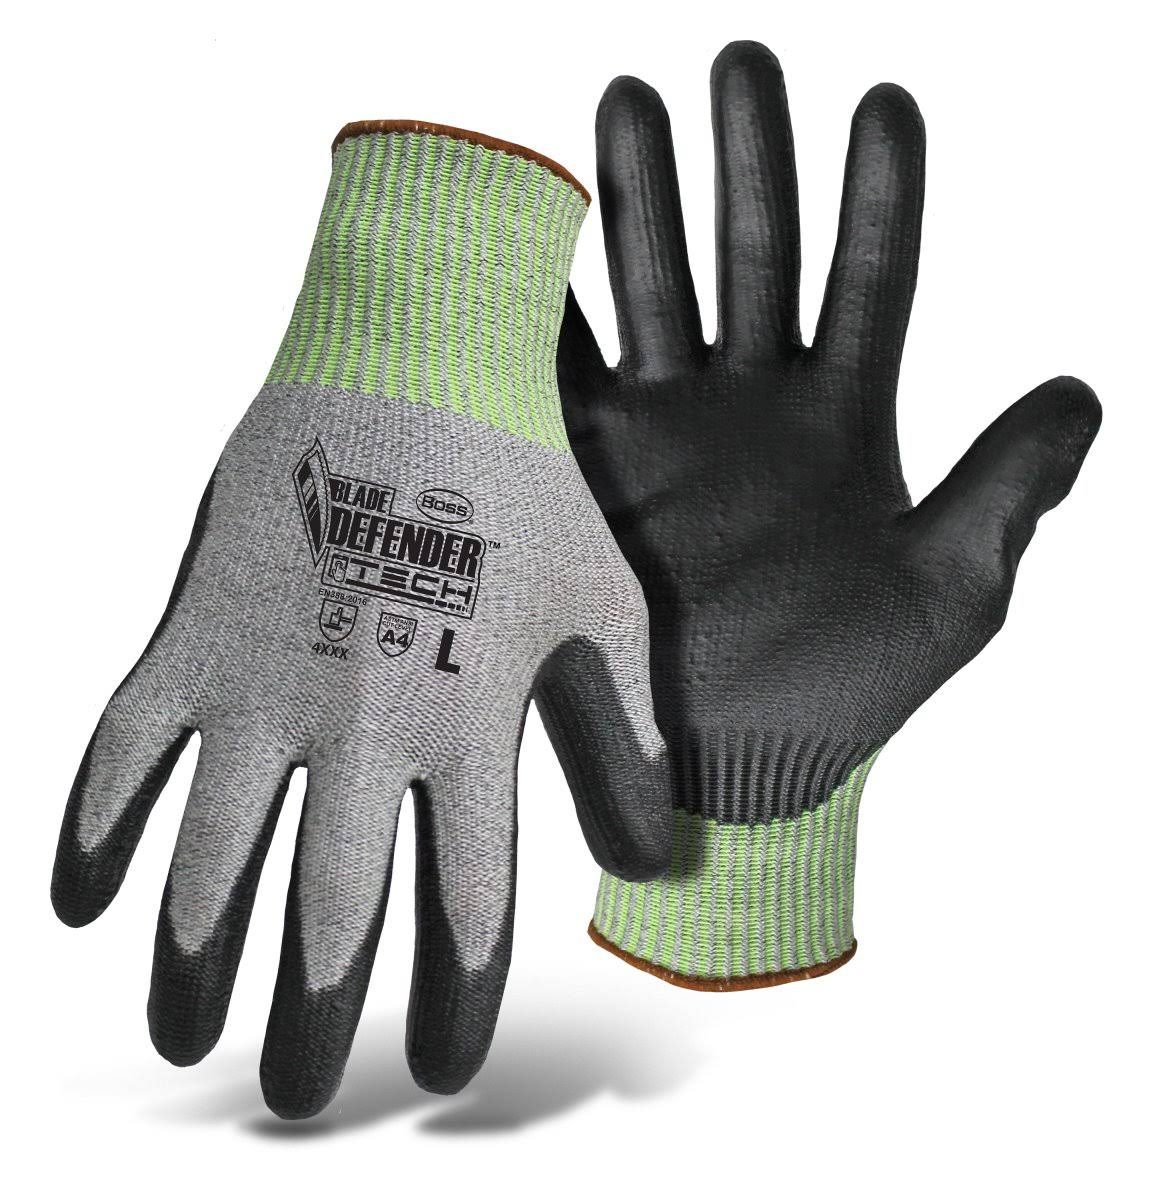 Boss 1PU7001X Blade Defender Tech Gloves - Pack of 12 - Extra Large